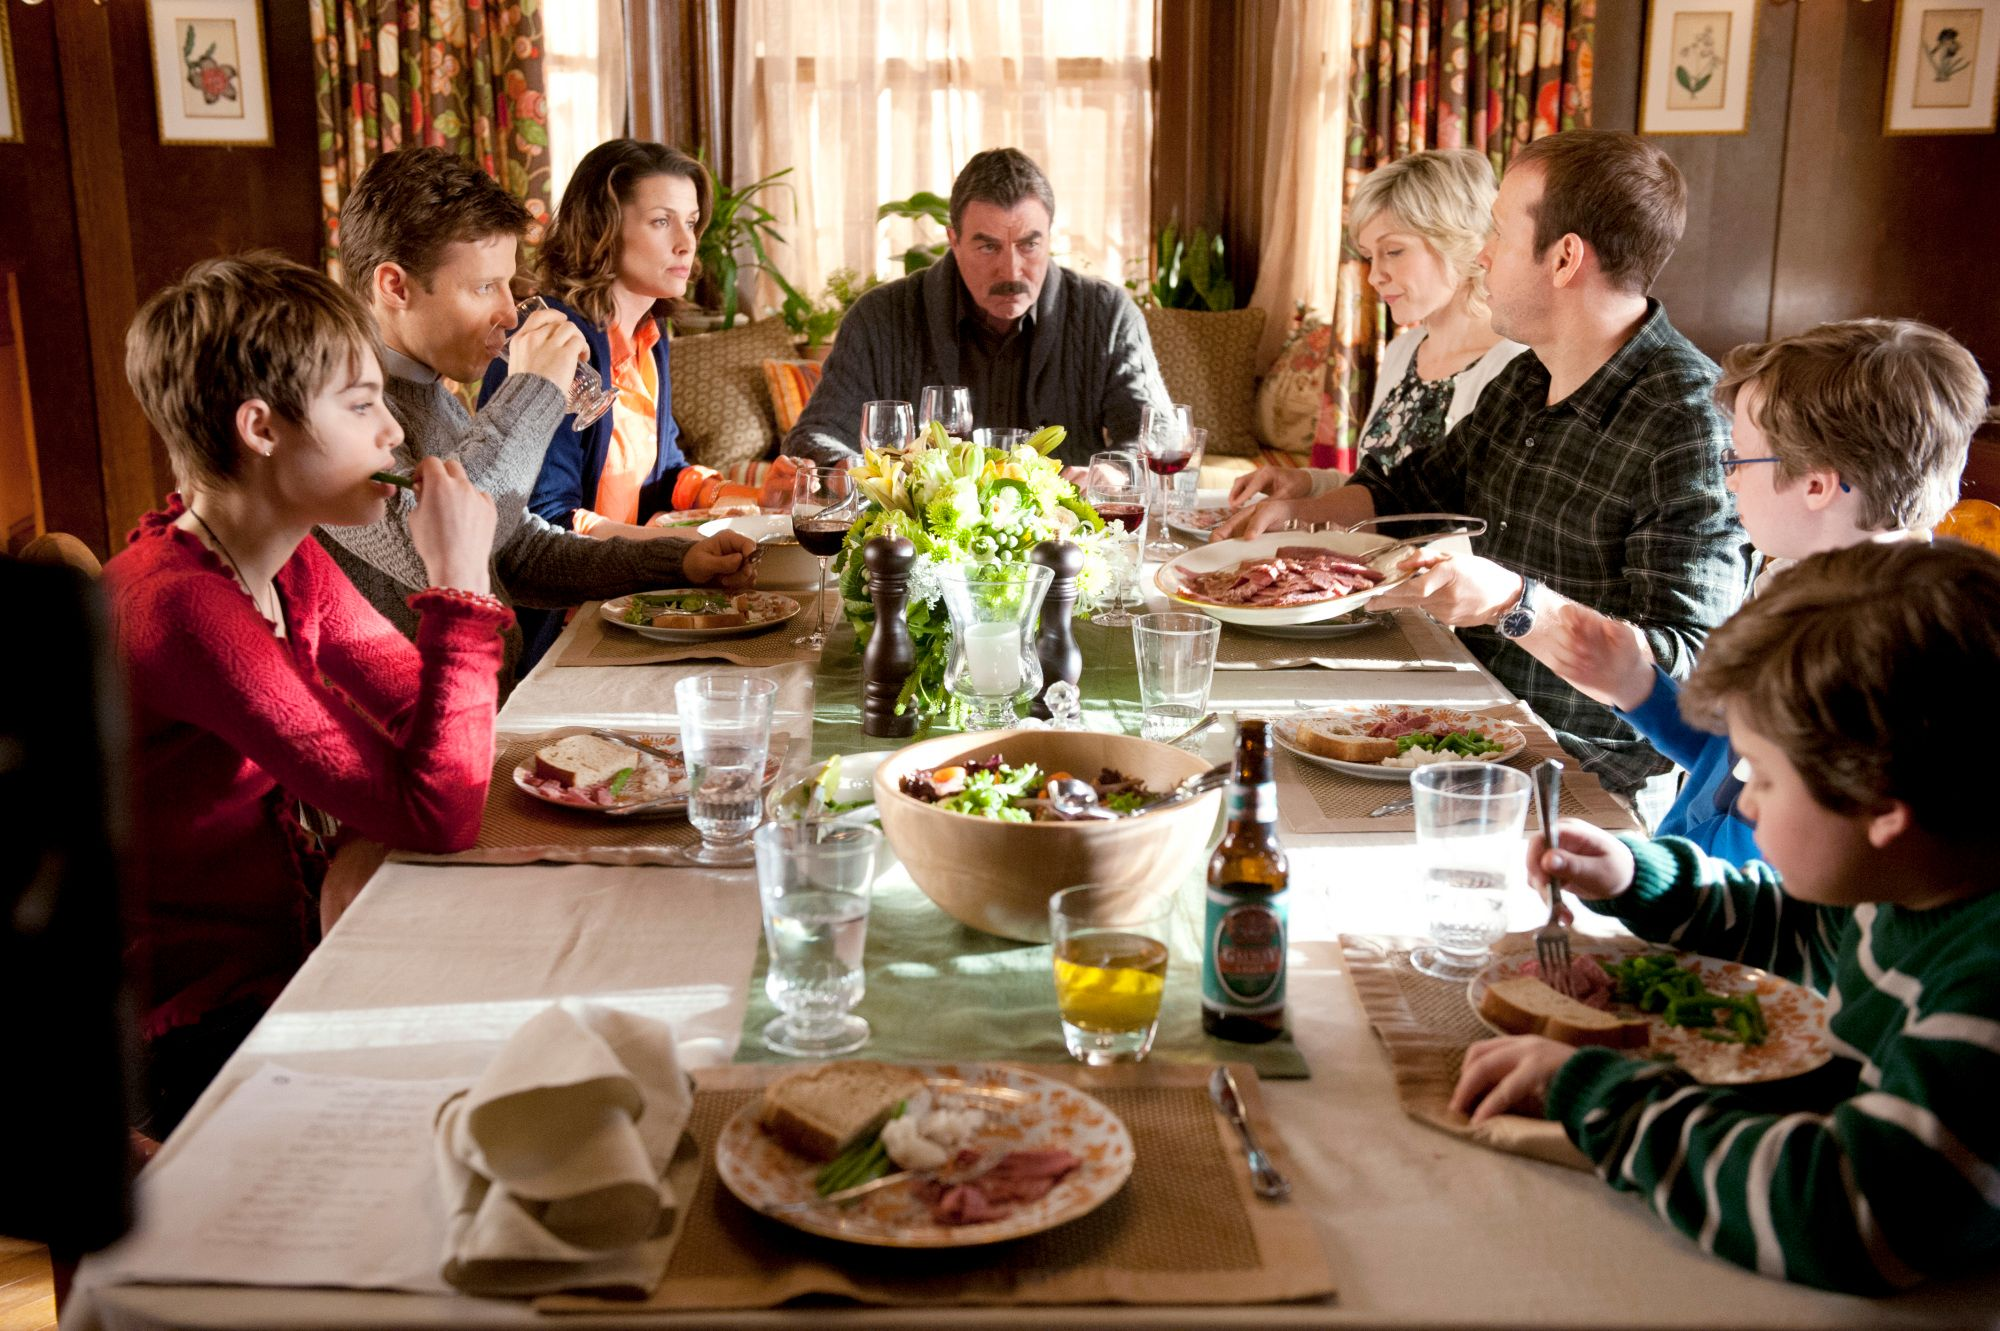 """The show's cast: Nicky (Sami Gayle), Jamie (Will Estes), Erin (Bridget Moynahan), Frank (Tom Selleck), Linda (Amy Carlson), Danny (Donnie Wahlberg), Jack (Tony Terraciano) and Sean (Andrew Terraciano) during family dinner, on """"Blue Bloods,"""" Friday, March 9. 